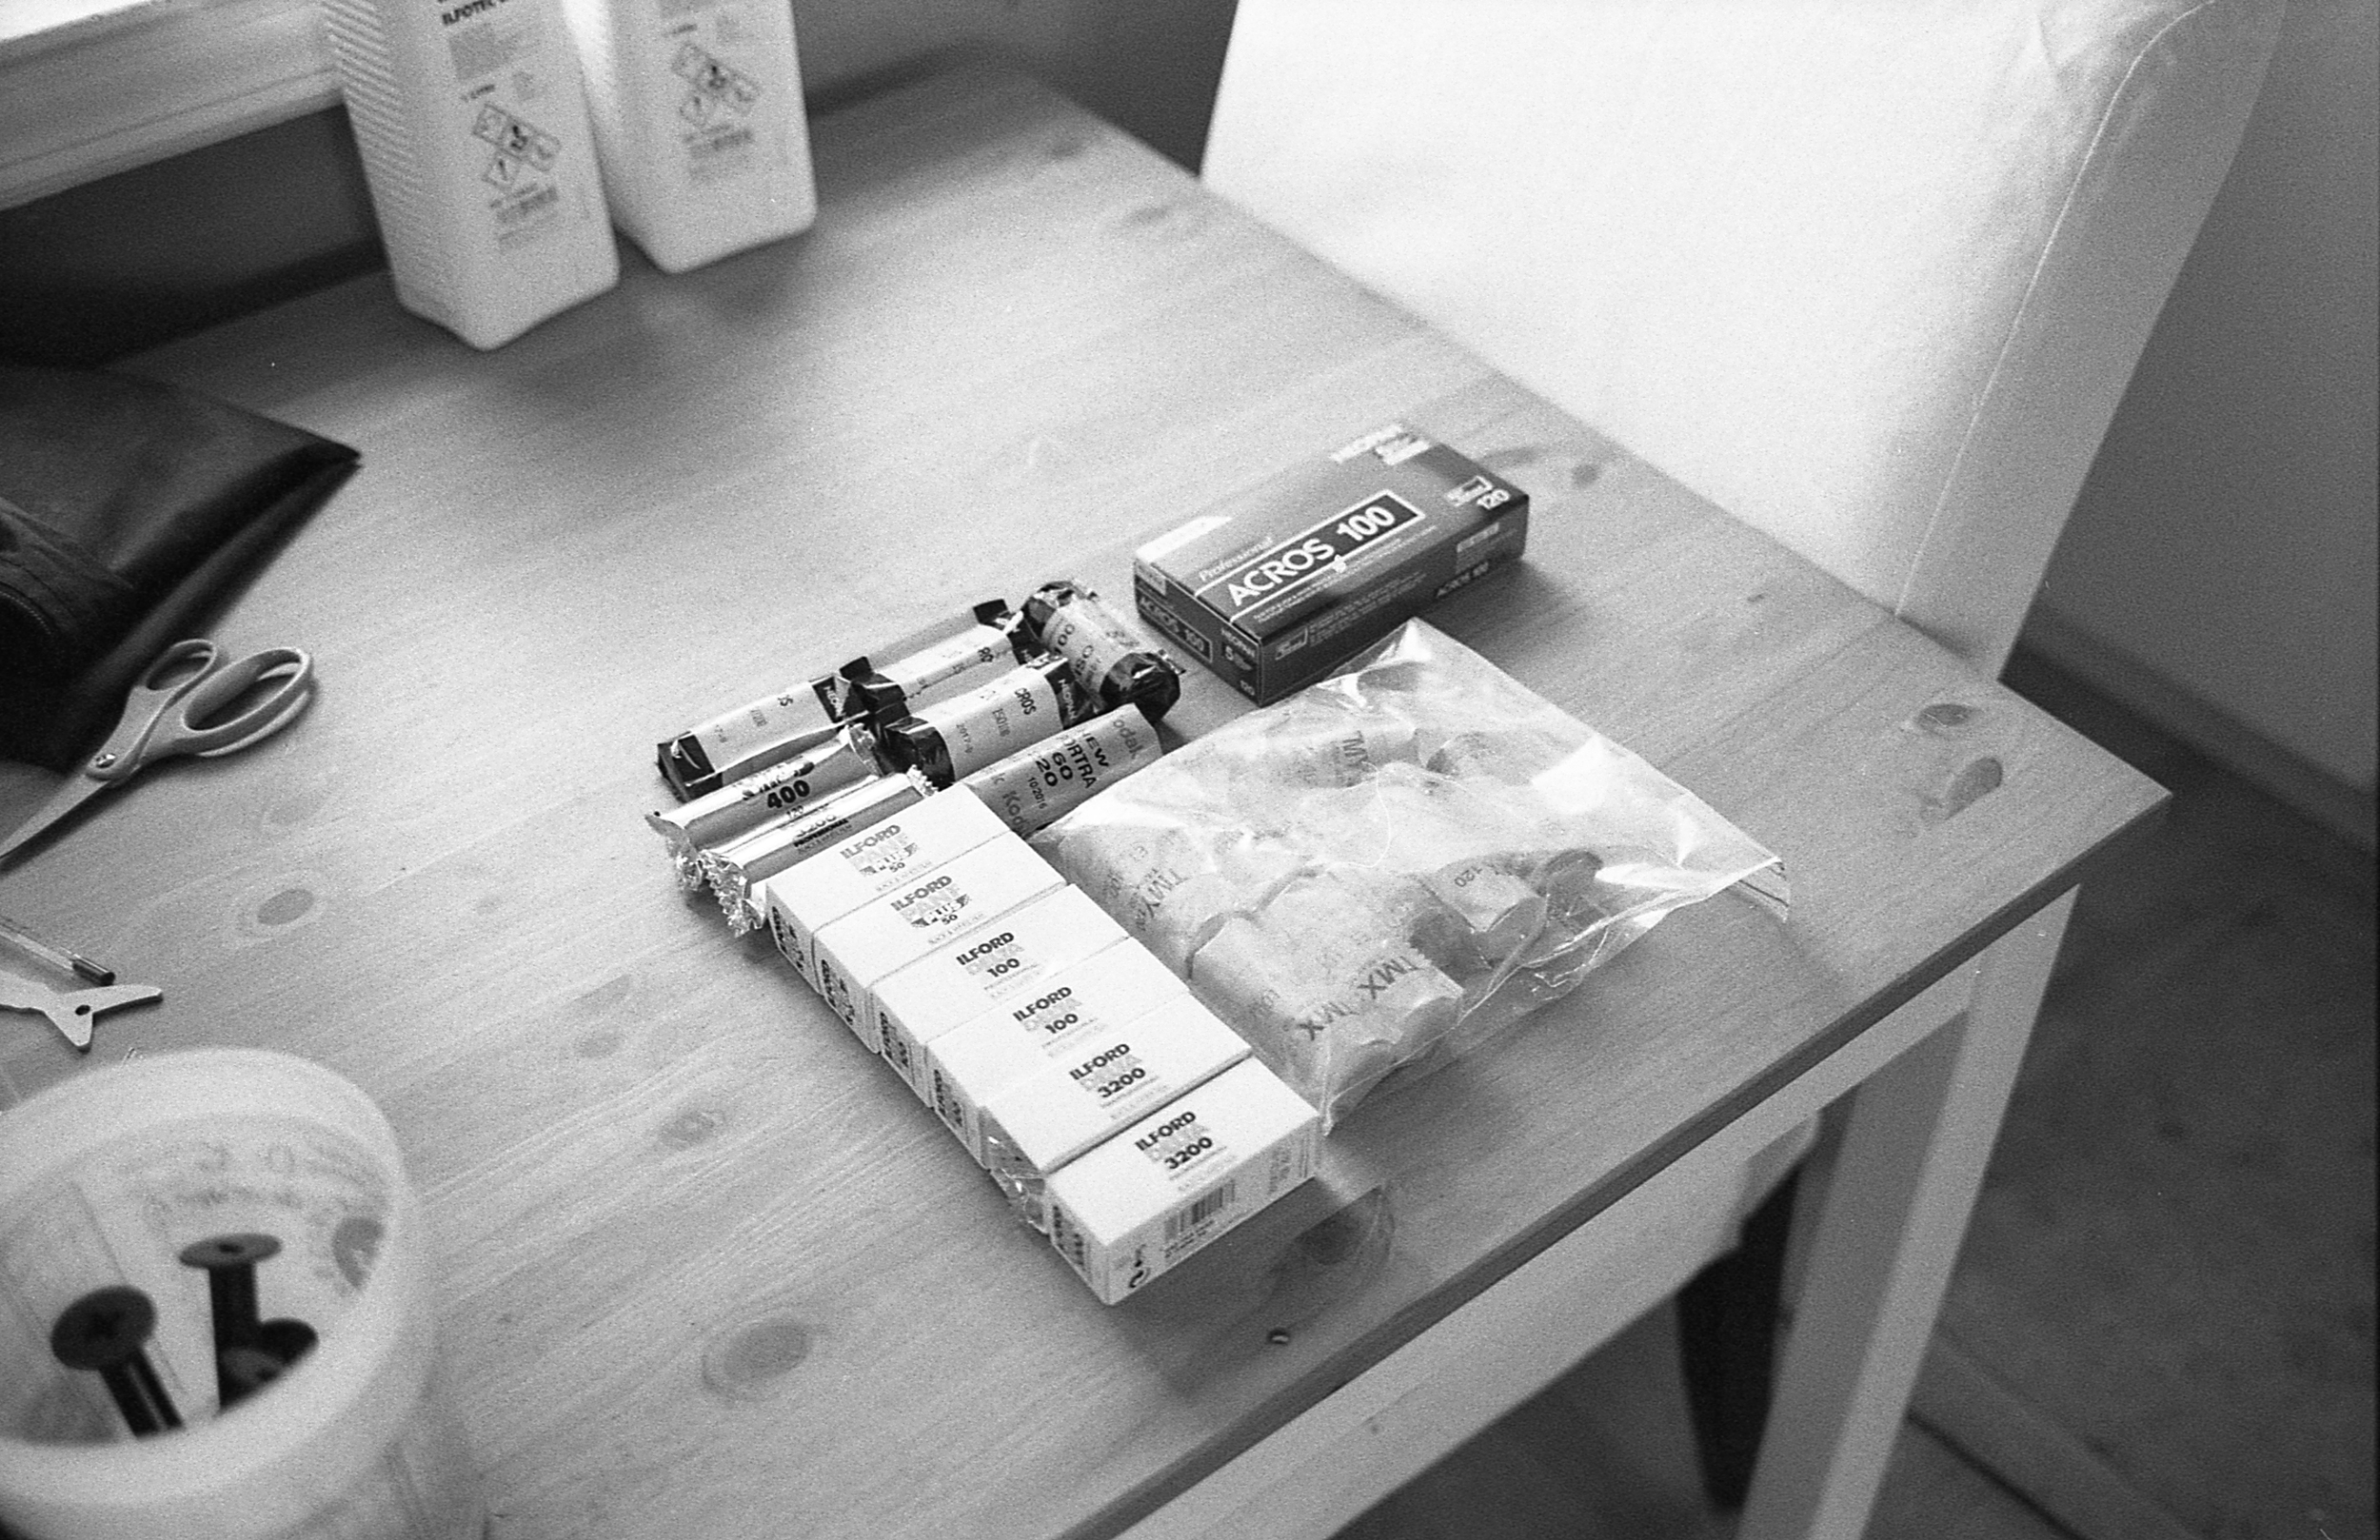 film goodness. Expired Tmax was given to me (I'll always accept and shoot free film) Ilford and Acros 100 are my two favorite b&w films.